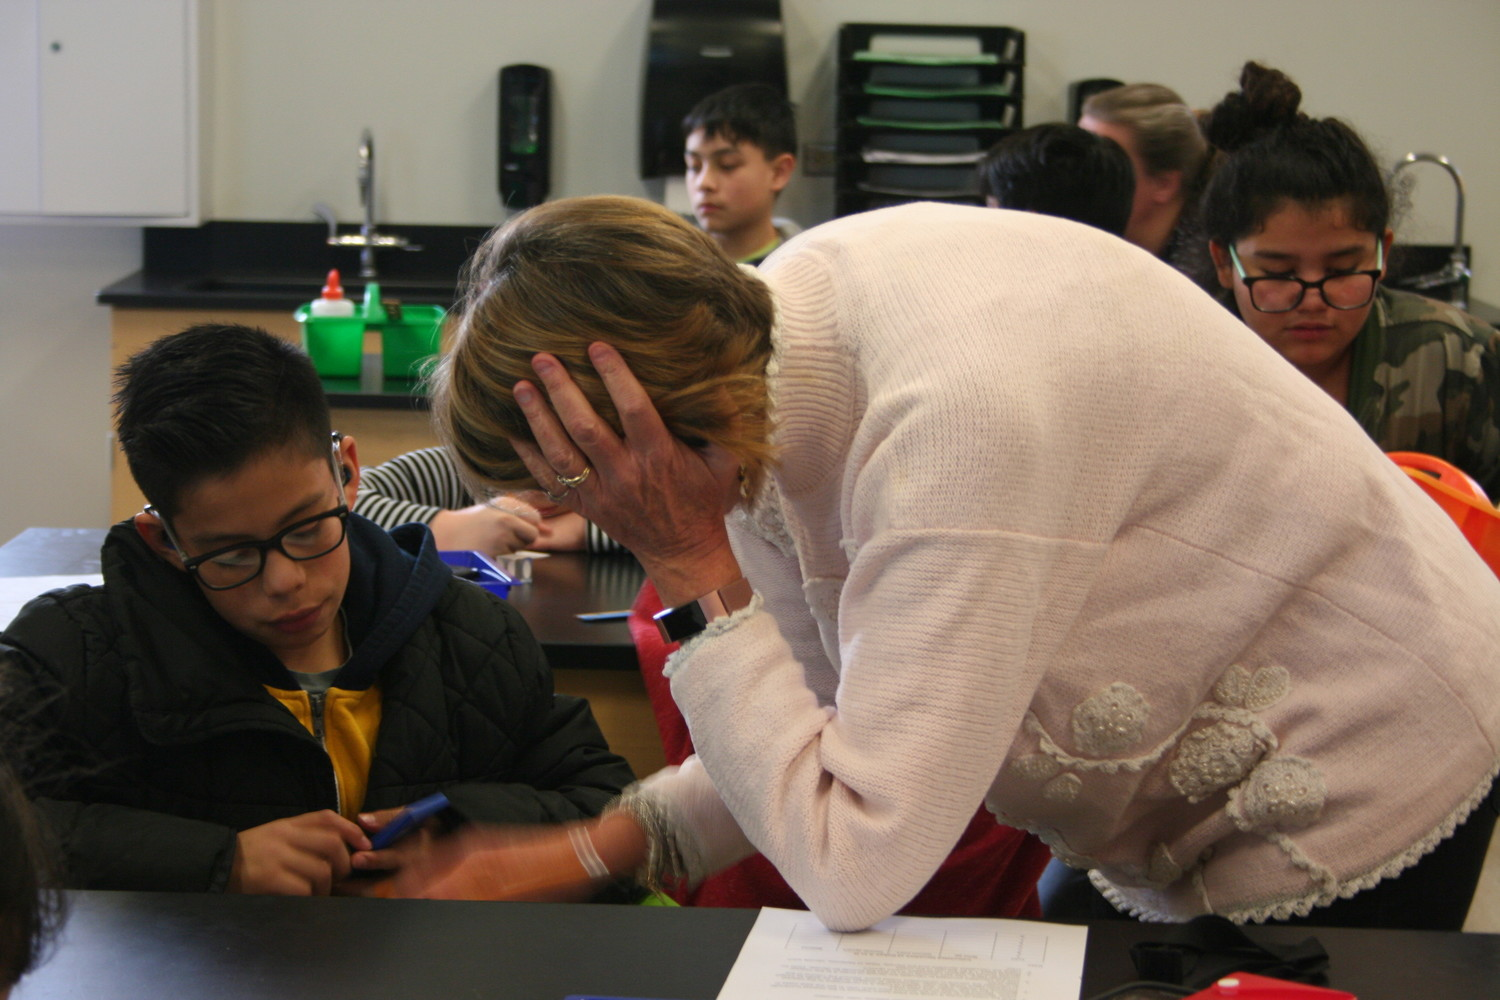 Teacher Patty Wirth assists deaf student Javier Compean during a science lab.